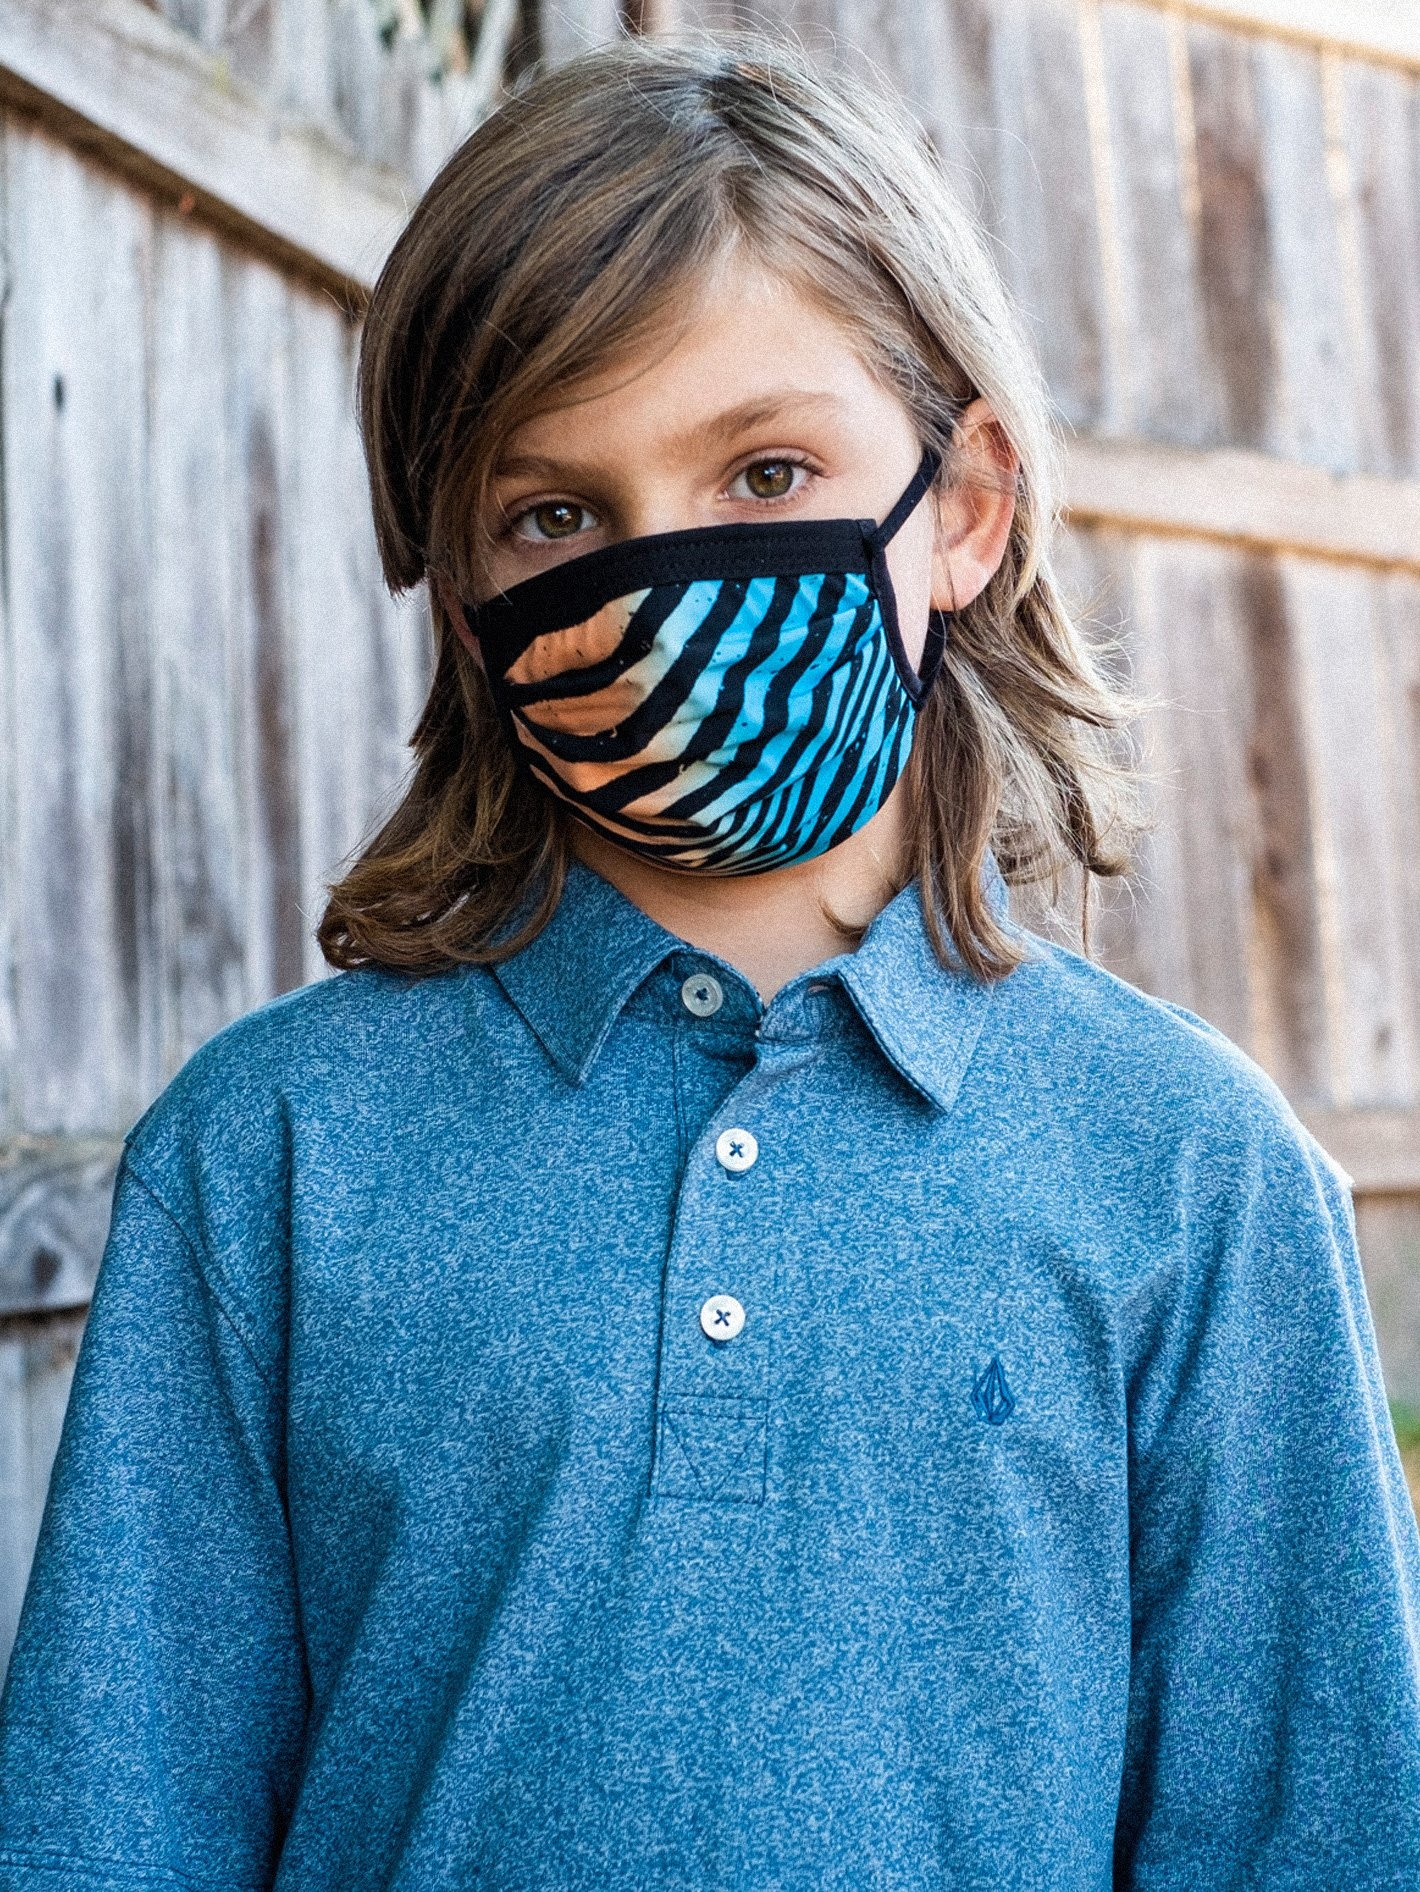 Vco Youth Facemask-4